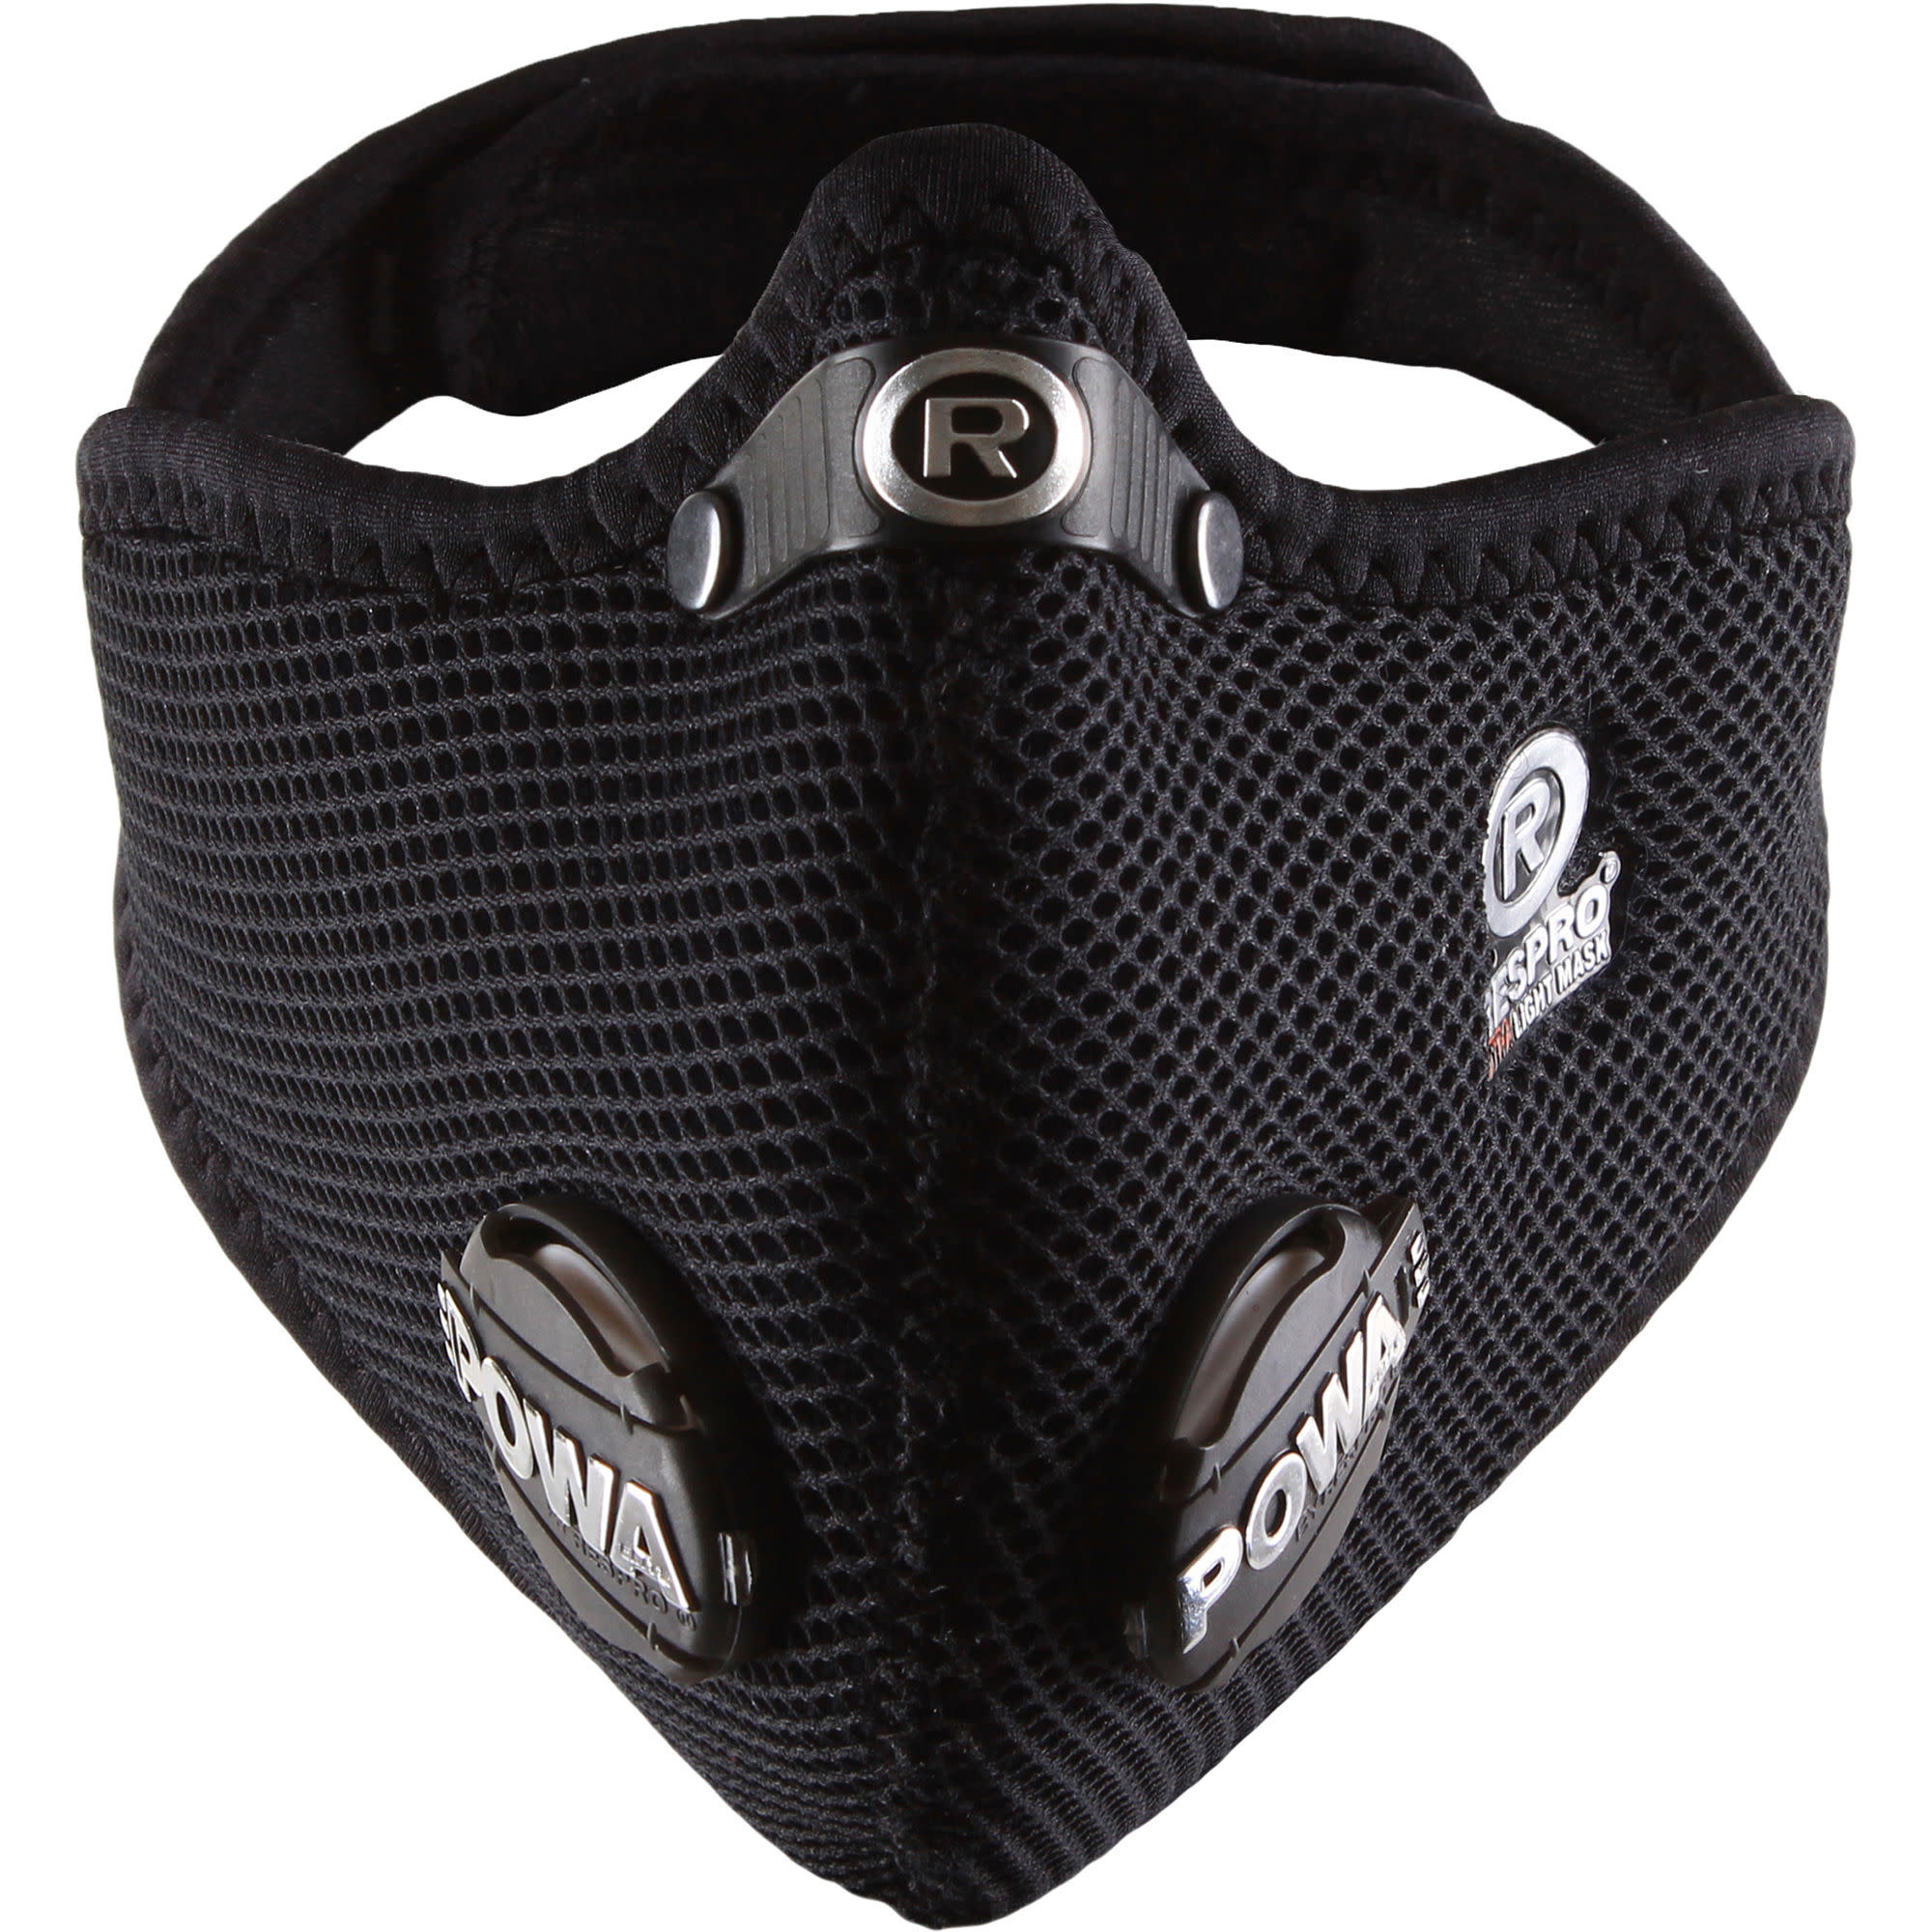 Respro MASK Respro Ultralight Black X-Large